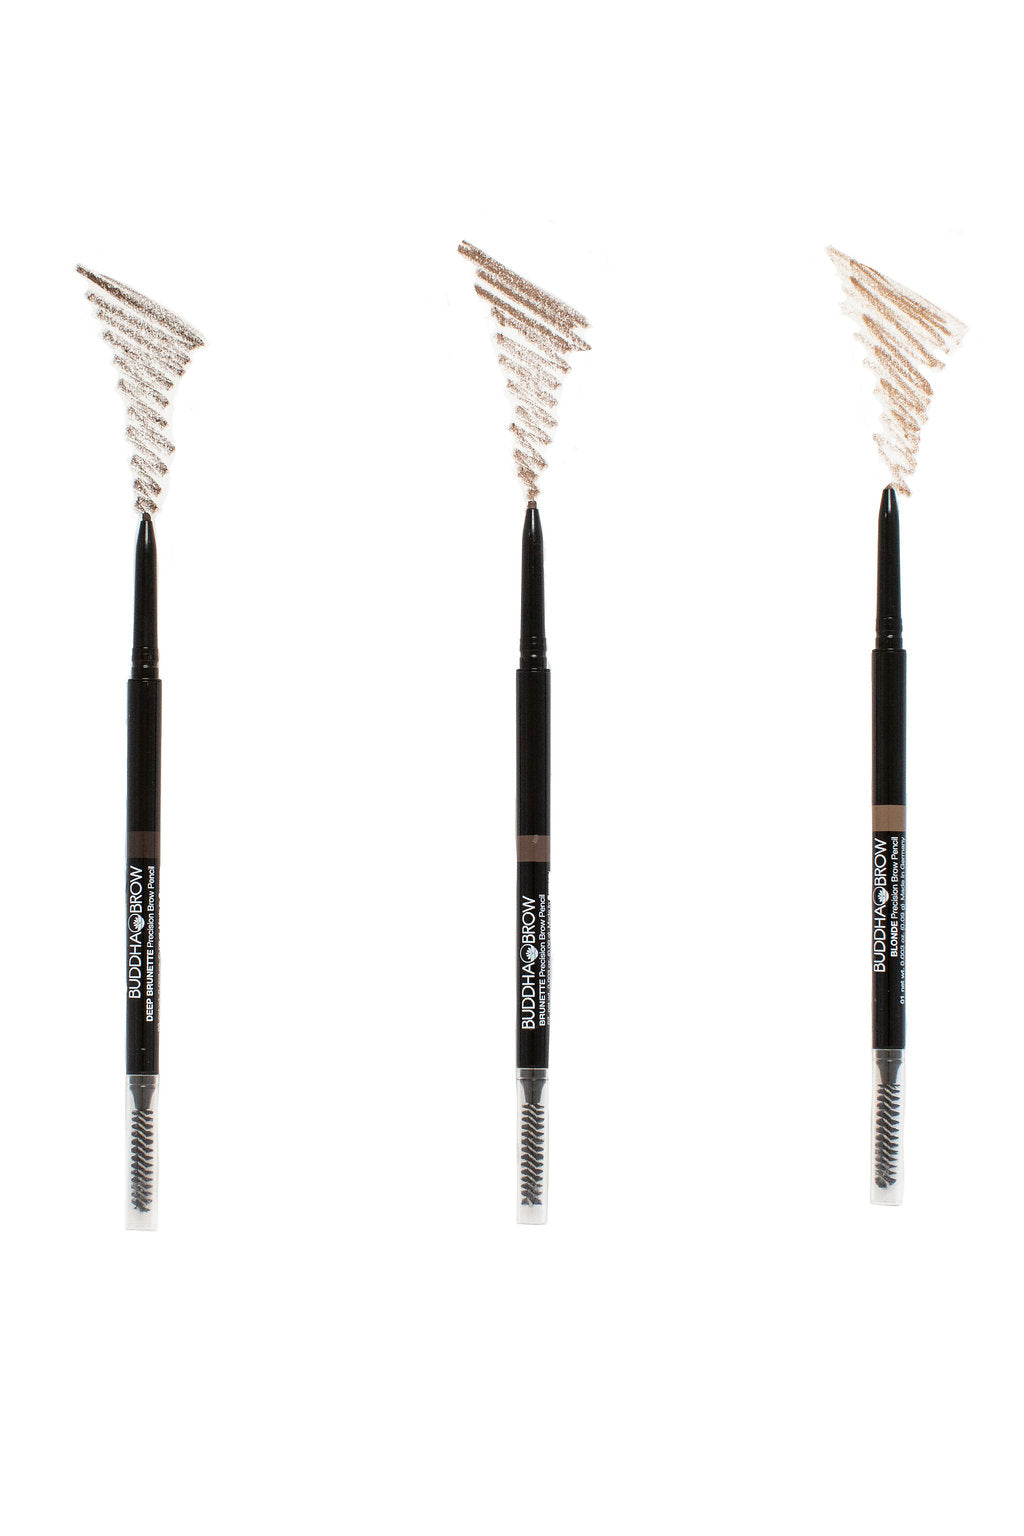 Buddha Brow Precision Brow Pencil